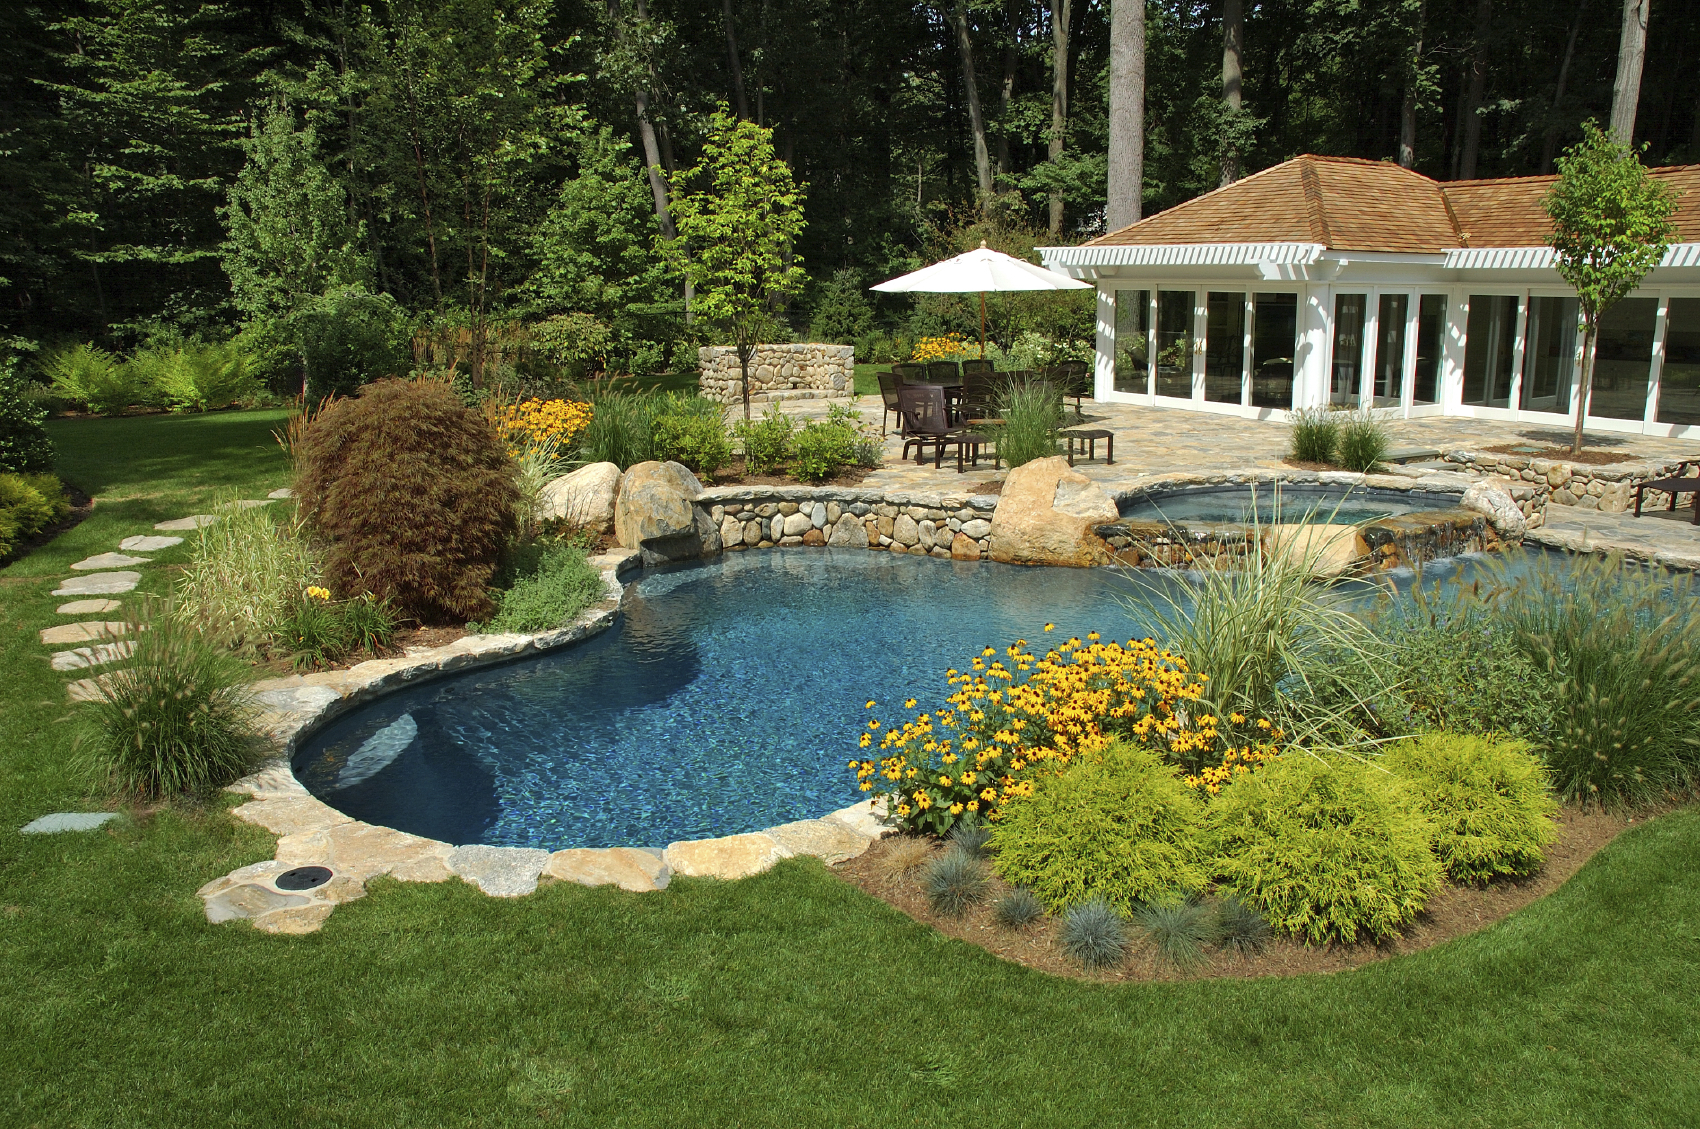 Landscaping Will Help Cape Cod Swimming Pools Blend More Naturally With  Your Yard, And Can Provide Coverage Of The Pool Equipment.